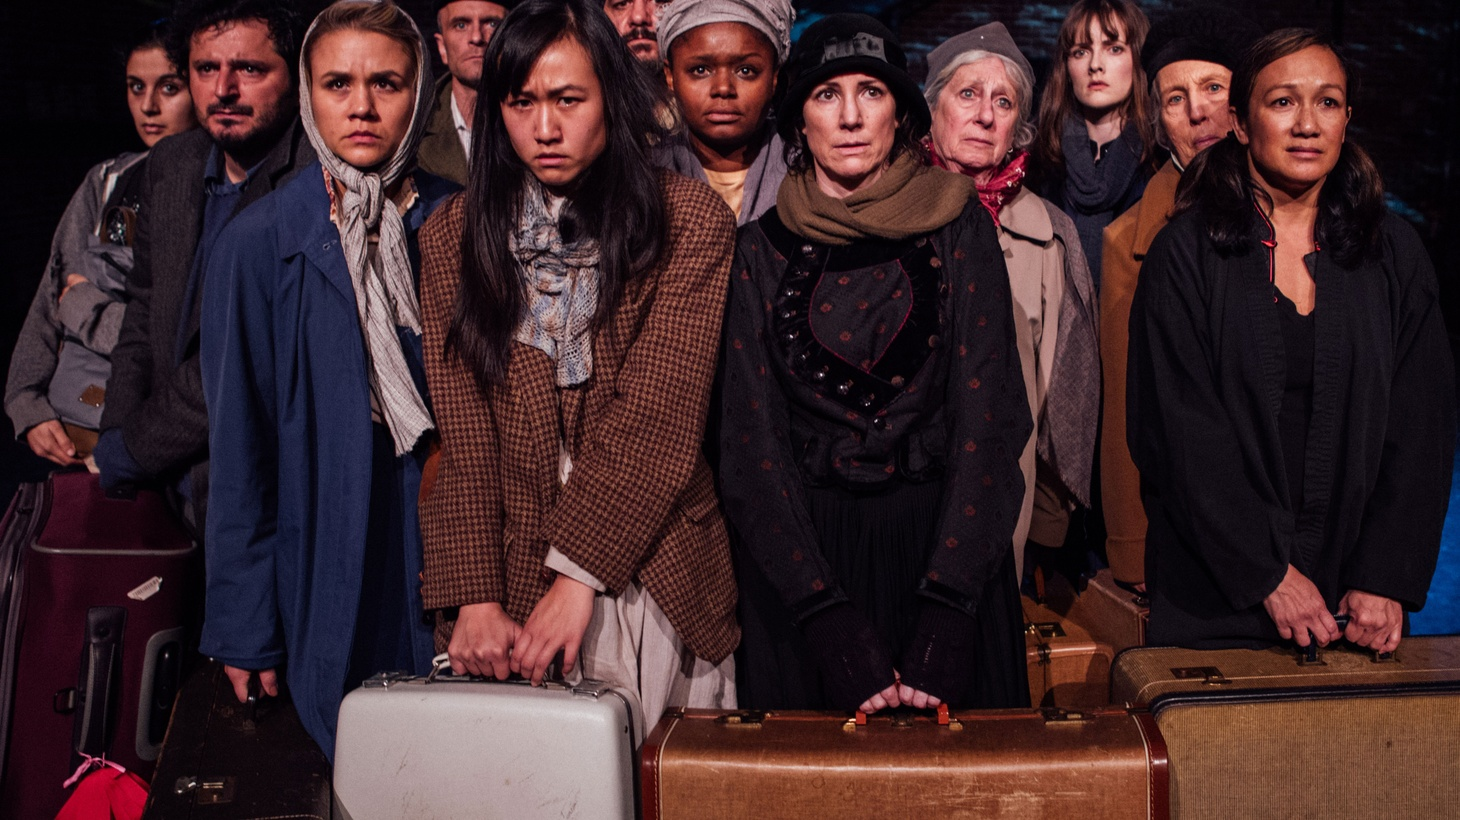 There's a lot of this 'witnessing' happening in the theater right now. Our political climate has theater makers anxious to do something, say something, to protest in some way. The challenge is–when you're preaching to the choir, what do you say?